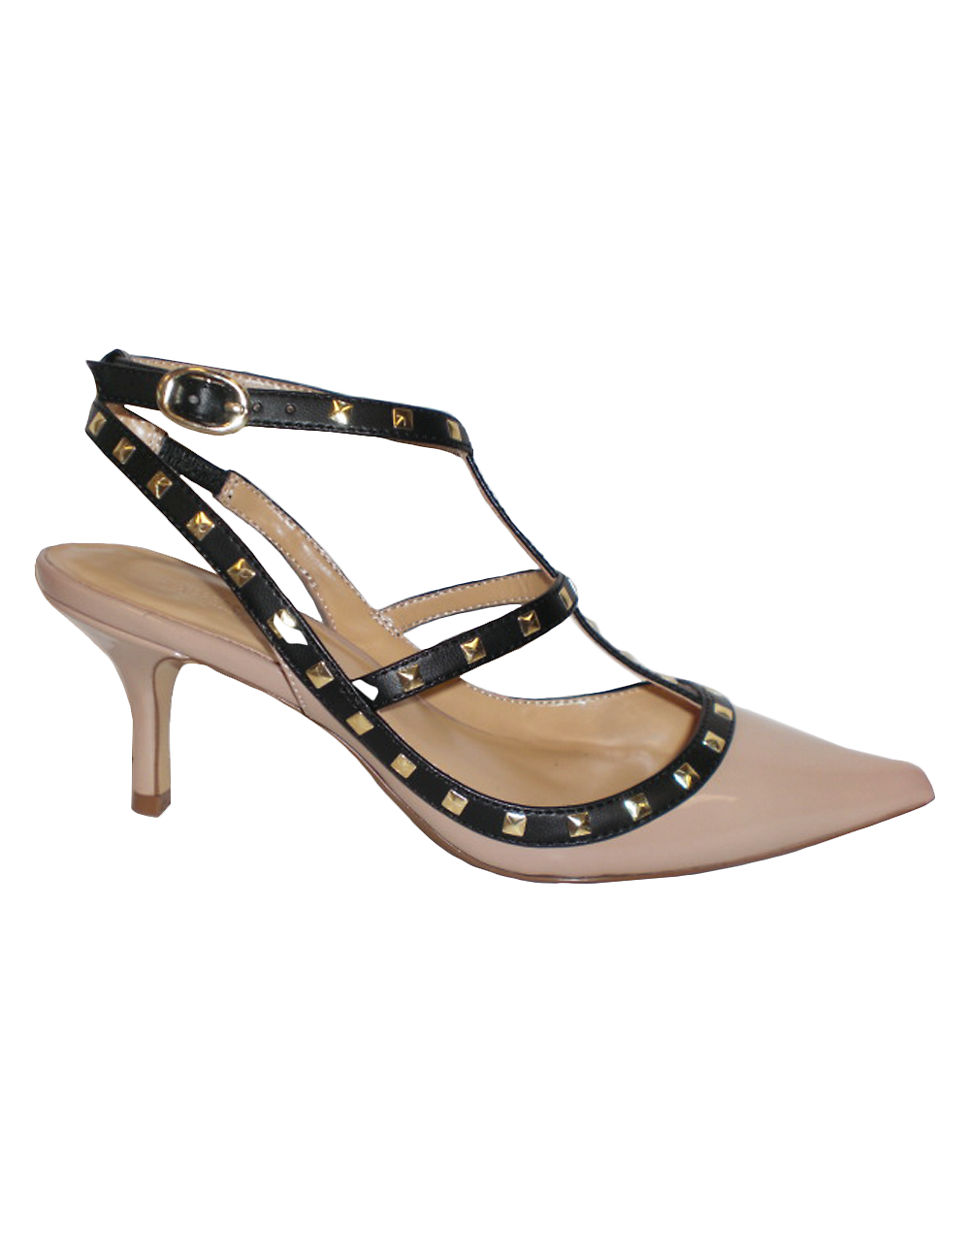 EXPRESSION Dahlia Strappy Pumps old rose Size 7